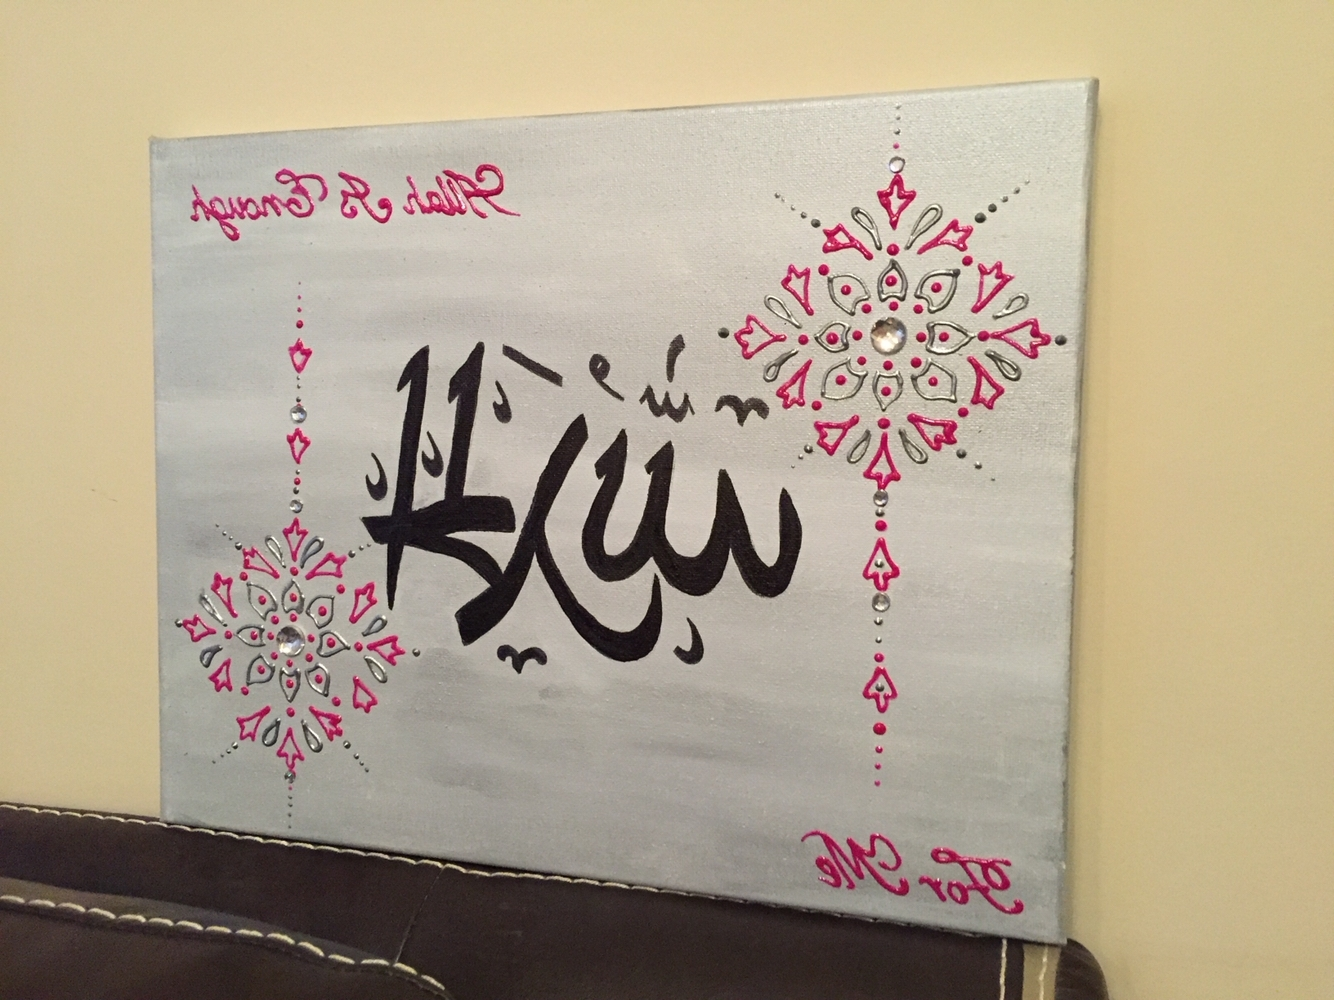 Islamic Canvas Islami Calligraphy Muslim Wall Art Https//.etsy With Regard & Showing Gallery of Islamic Canvas Wall Art (View 9 of 15 Photos)